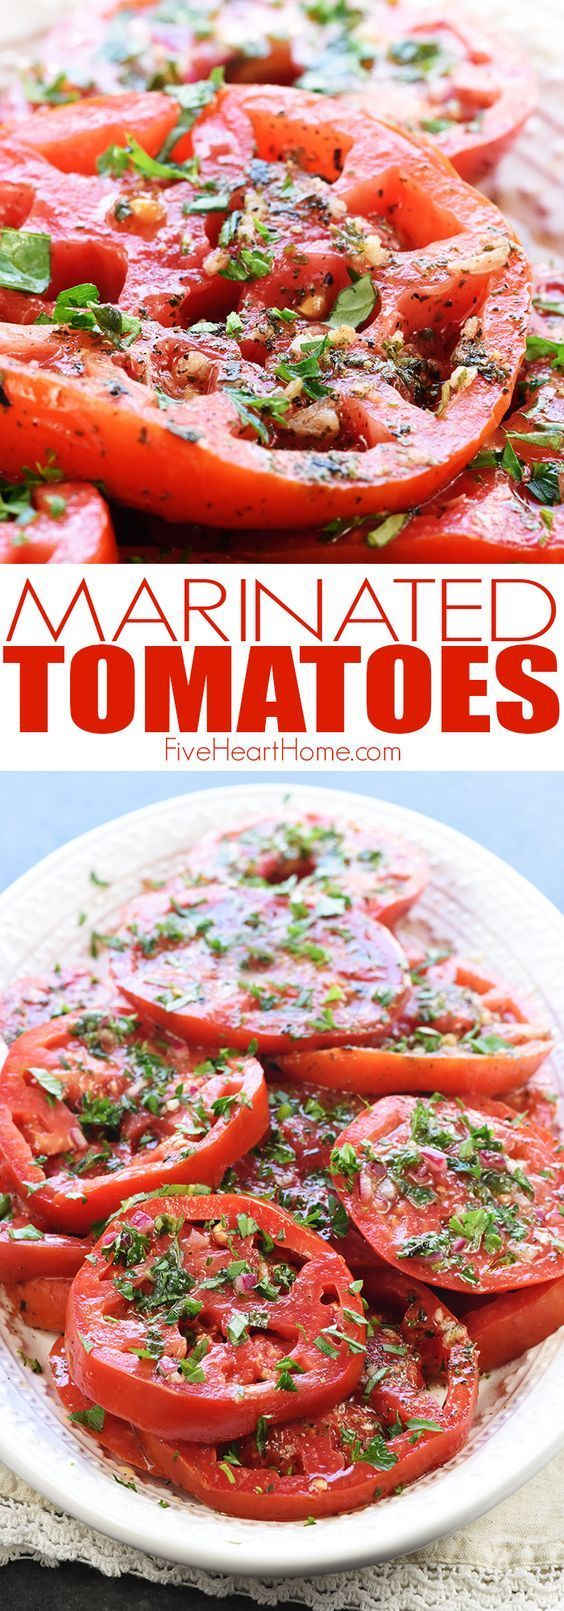 The Best Marinated Tomatoes Ripe Juicy Tomatoes Soak Up Olive Oil Red Wine Vinegar Onion Marinated Tomato Salad Recipe Vegetable Recipes Healthy Recipes